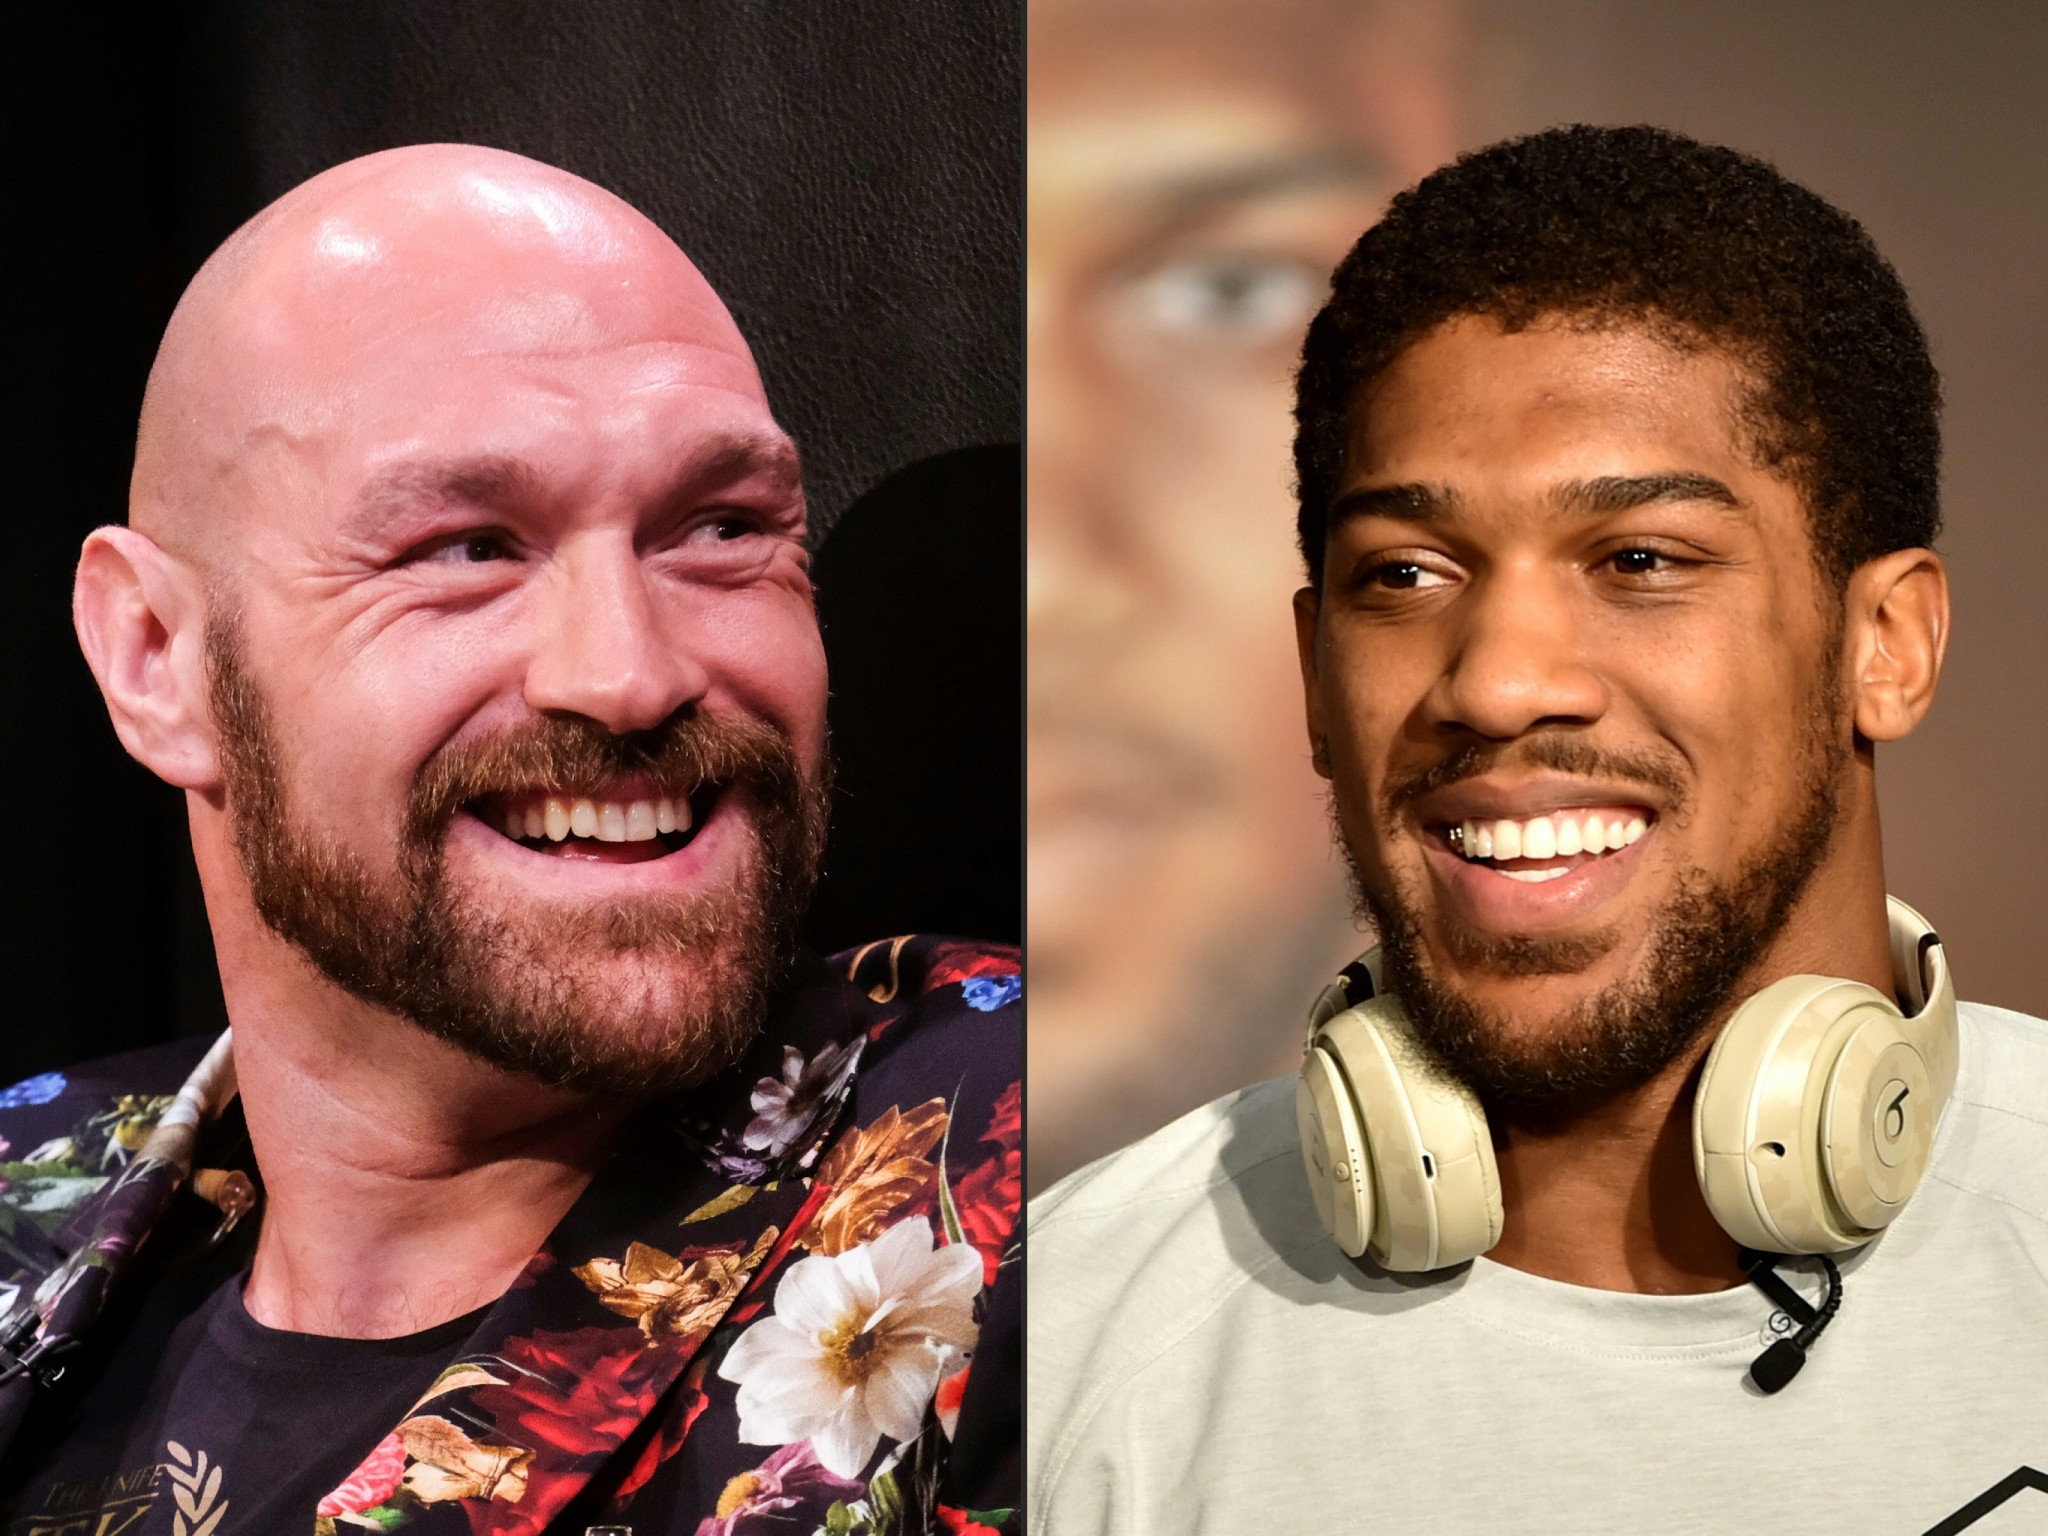 Tyson Fury v Anthony Joshua is being billed as the fight of this century - if it takes place ©Getty Images